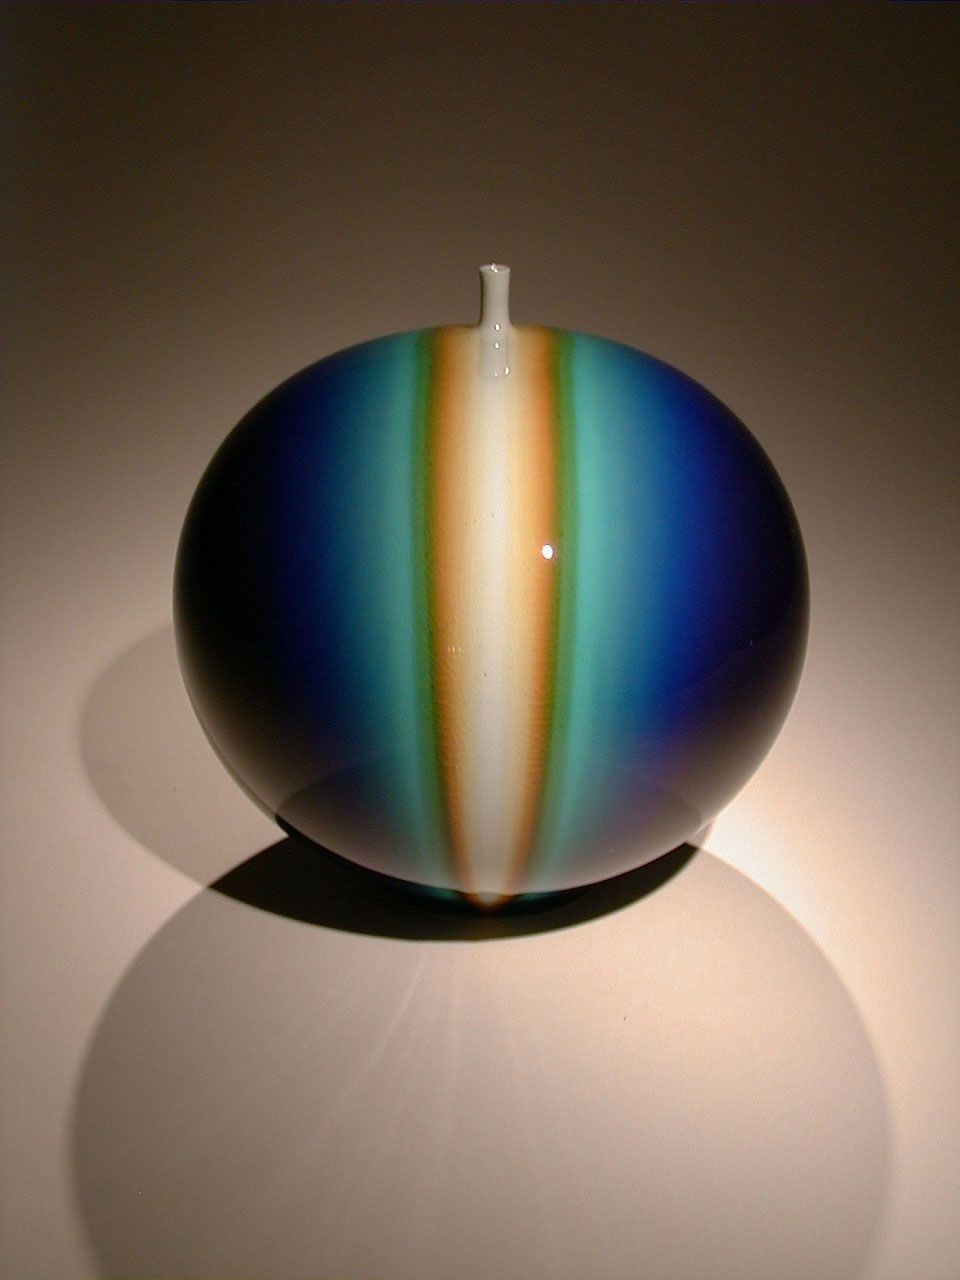 Blue globular vase with infused blue and yellow and a protruded mouth